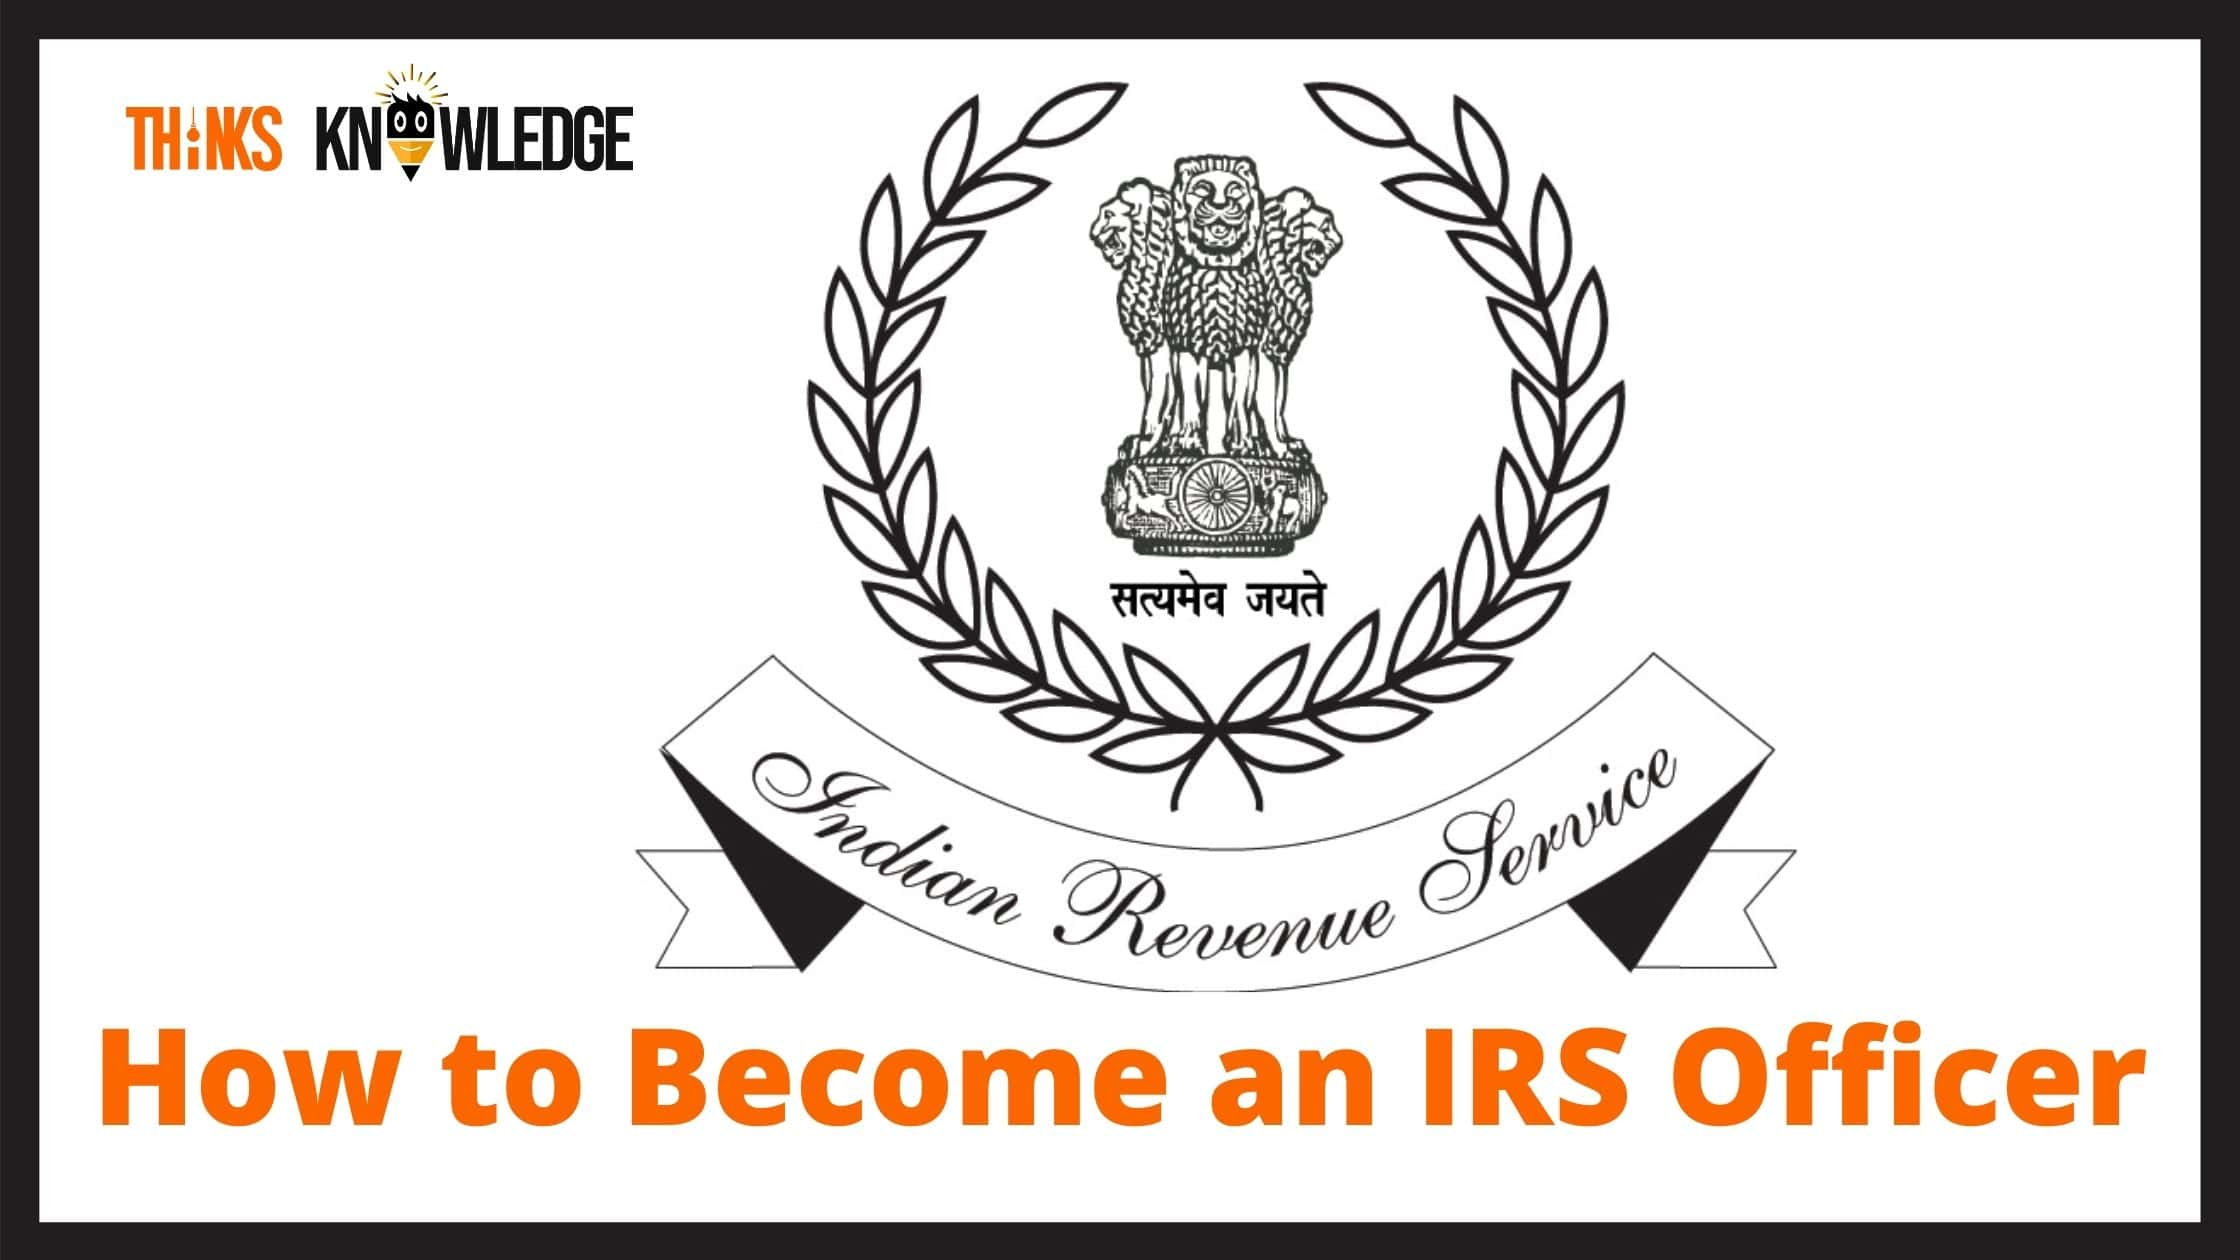 IRS Officer